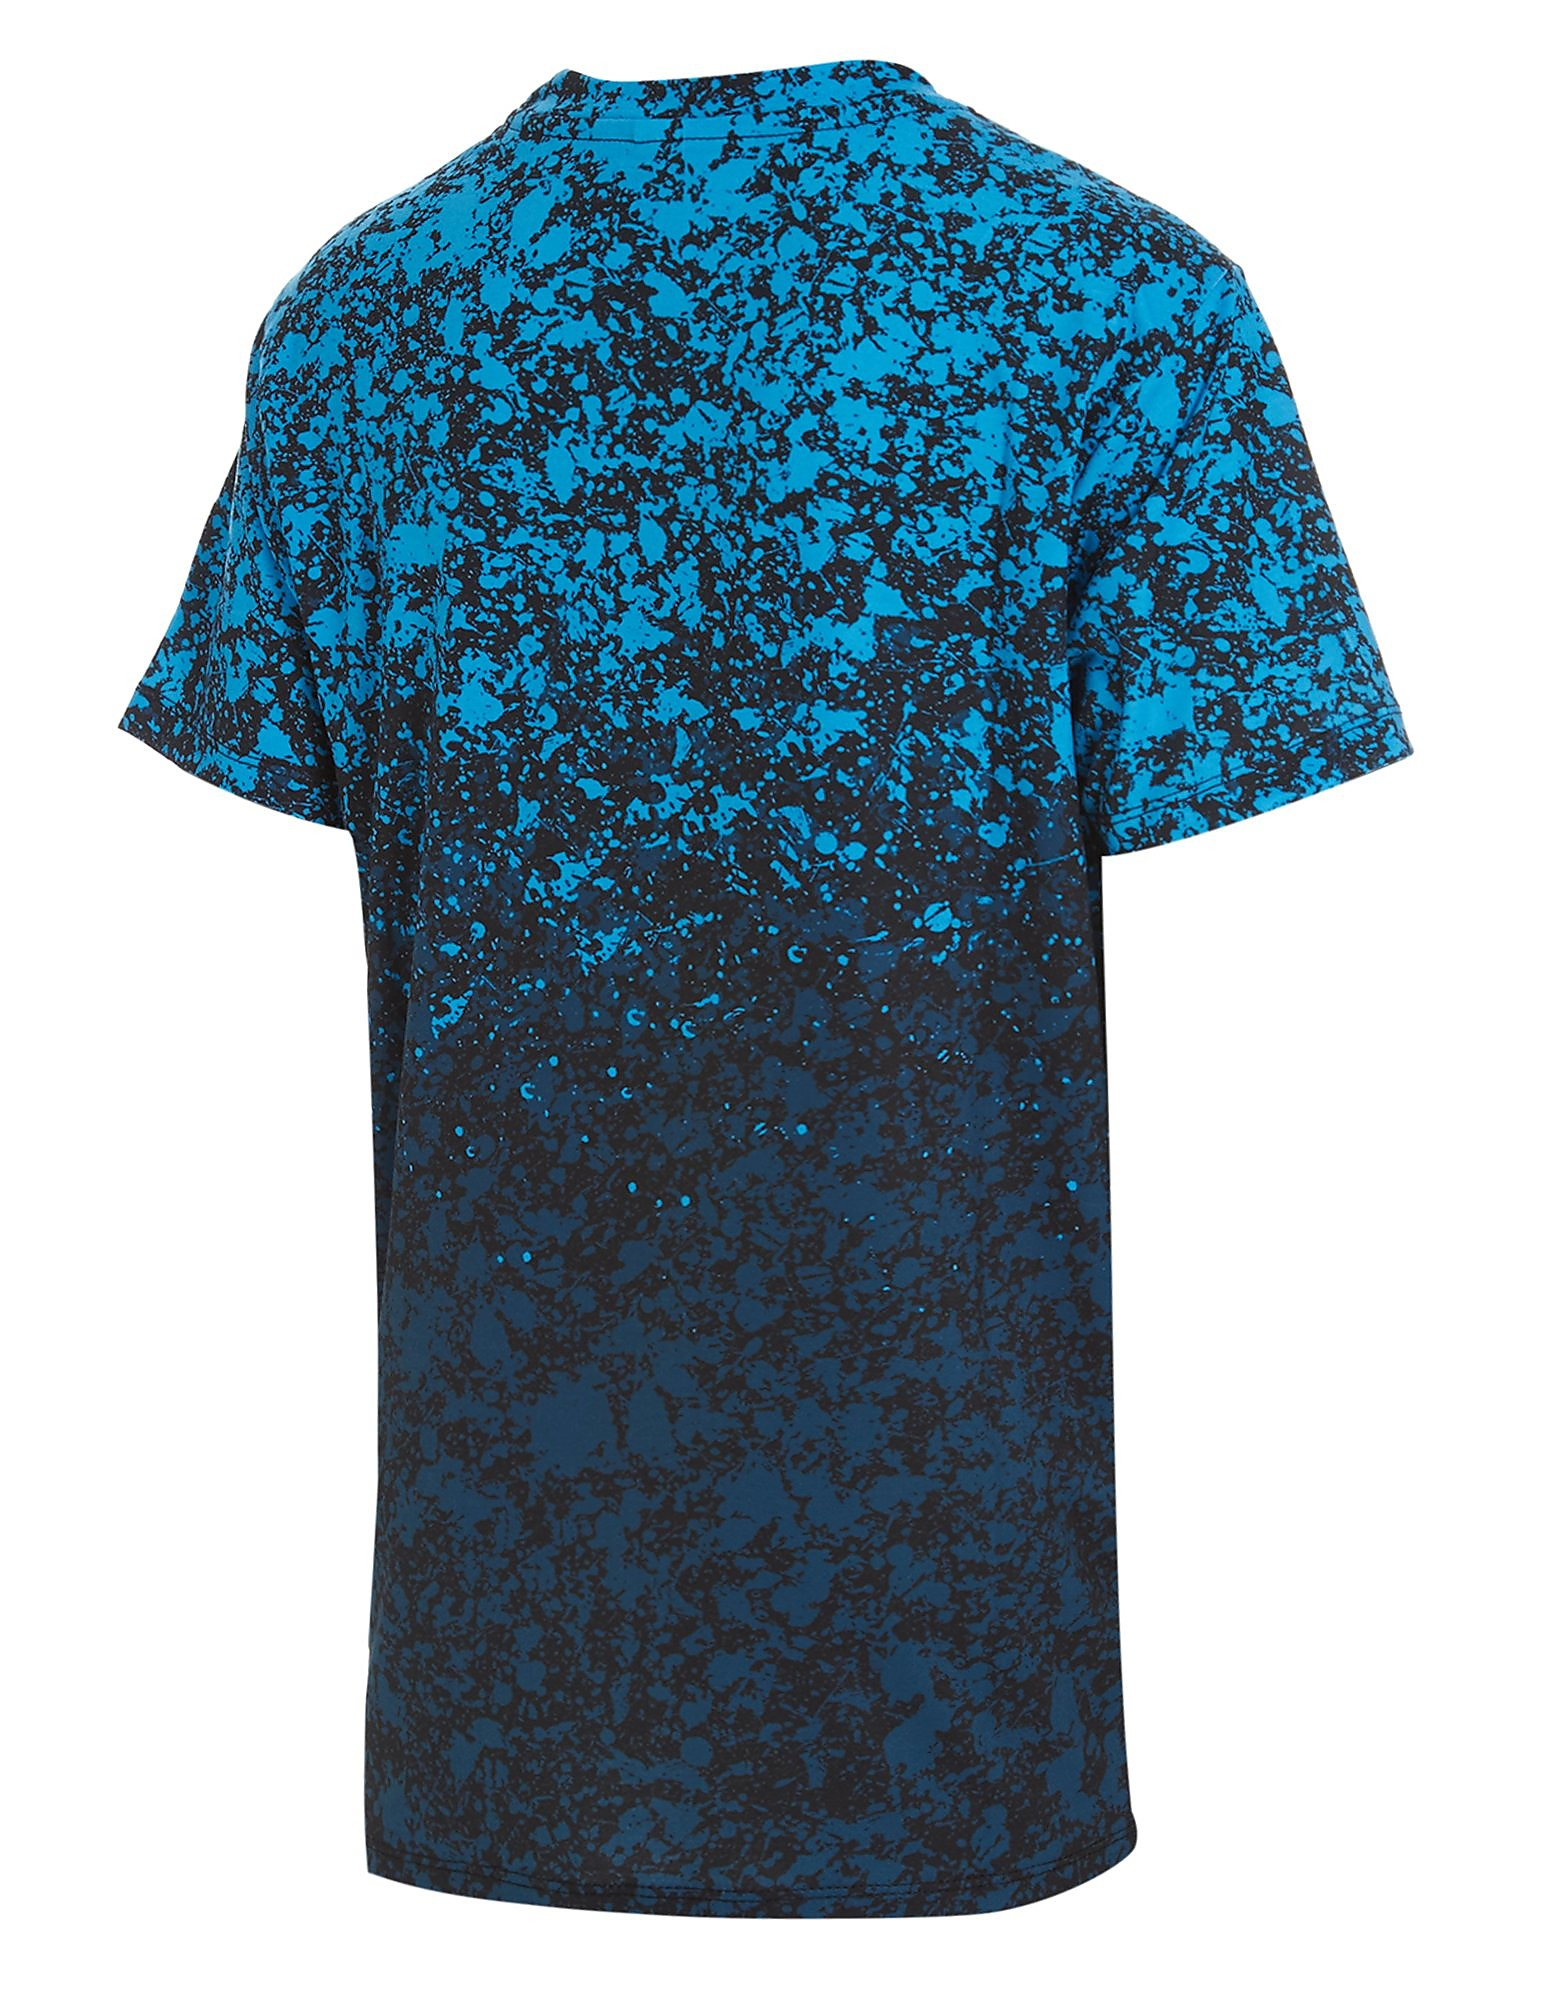 Hype Blue Splats T-Shirt